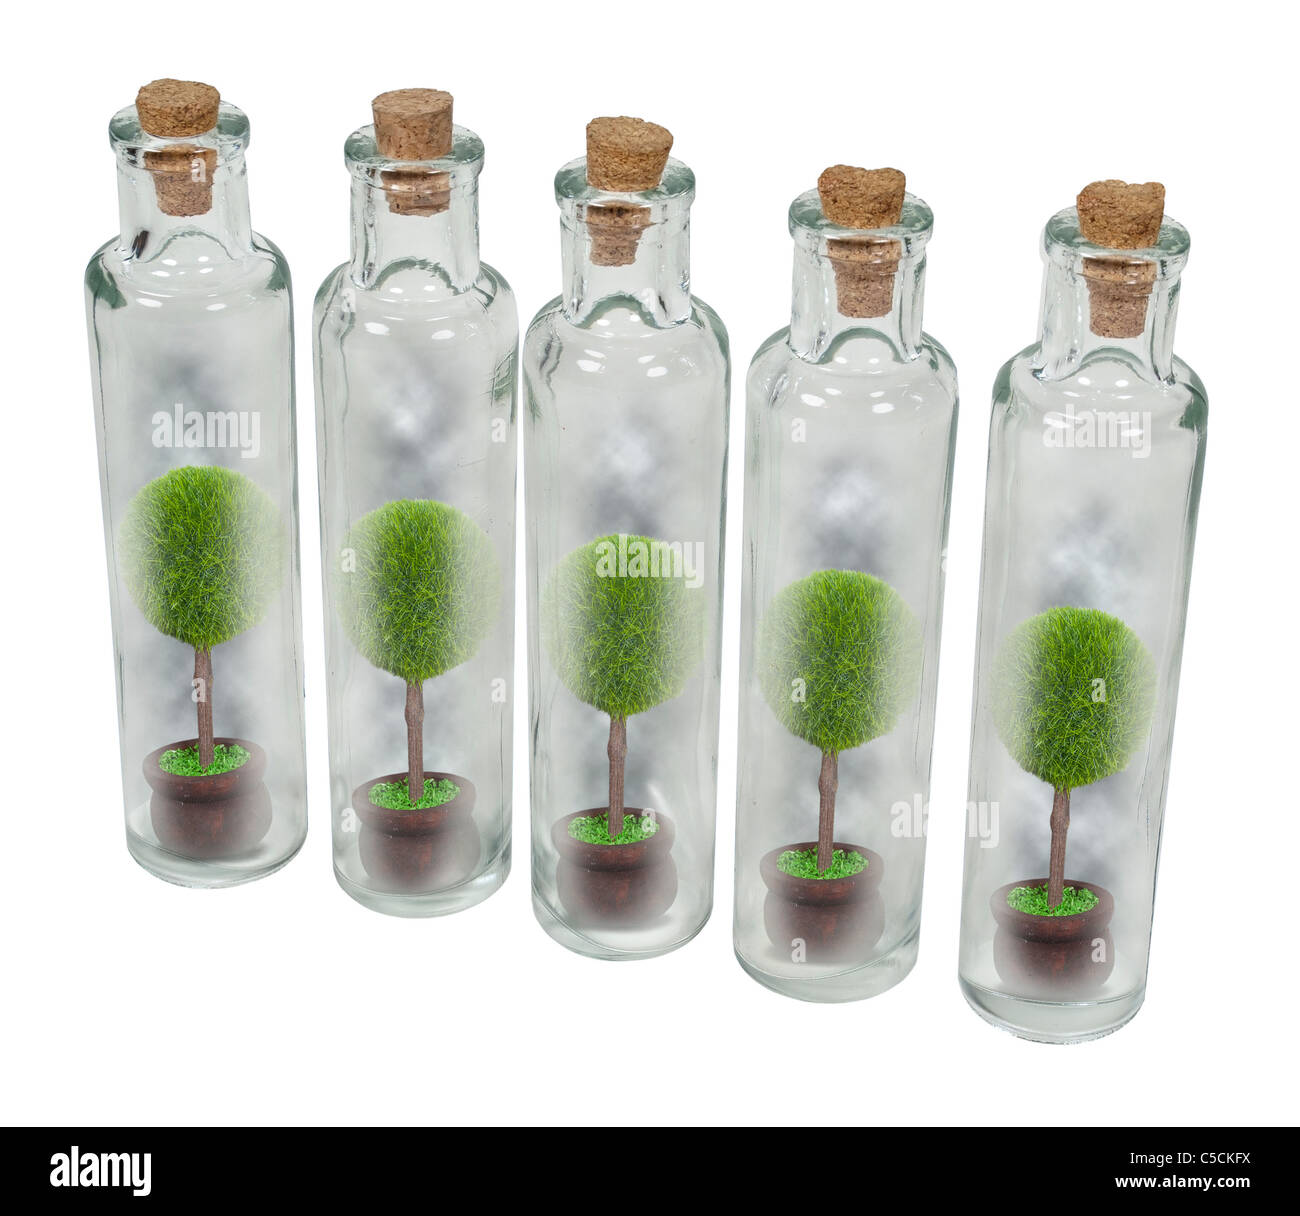 Nature preserved in jars shown by trees in individual tall thin glass bottles with cork stoppers - path included - Stock Image